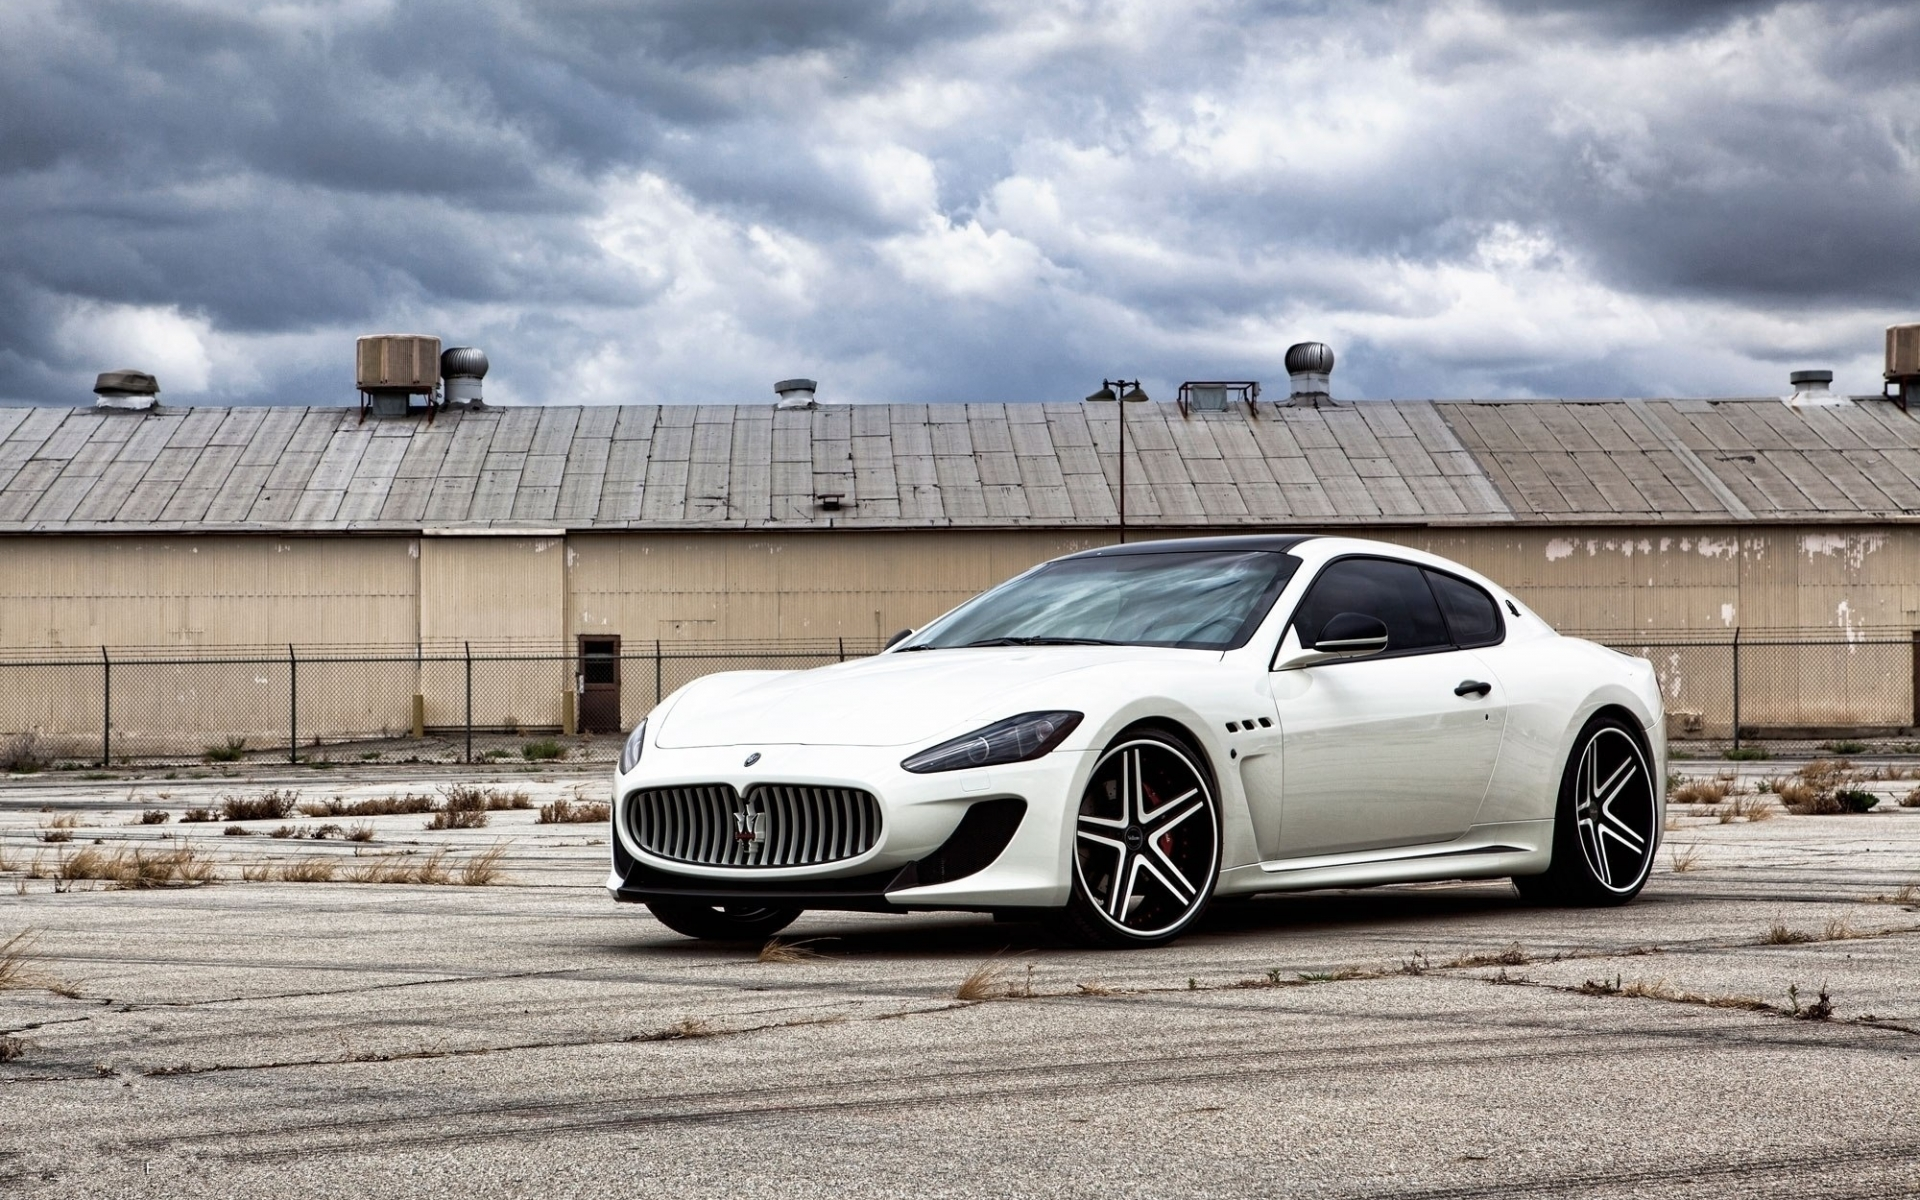 32569 download wallpaper Transport, Auto, Maserati screensavers and pictures for free